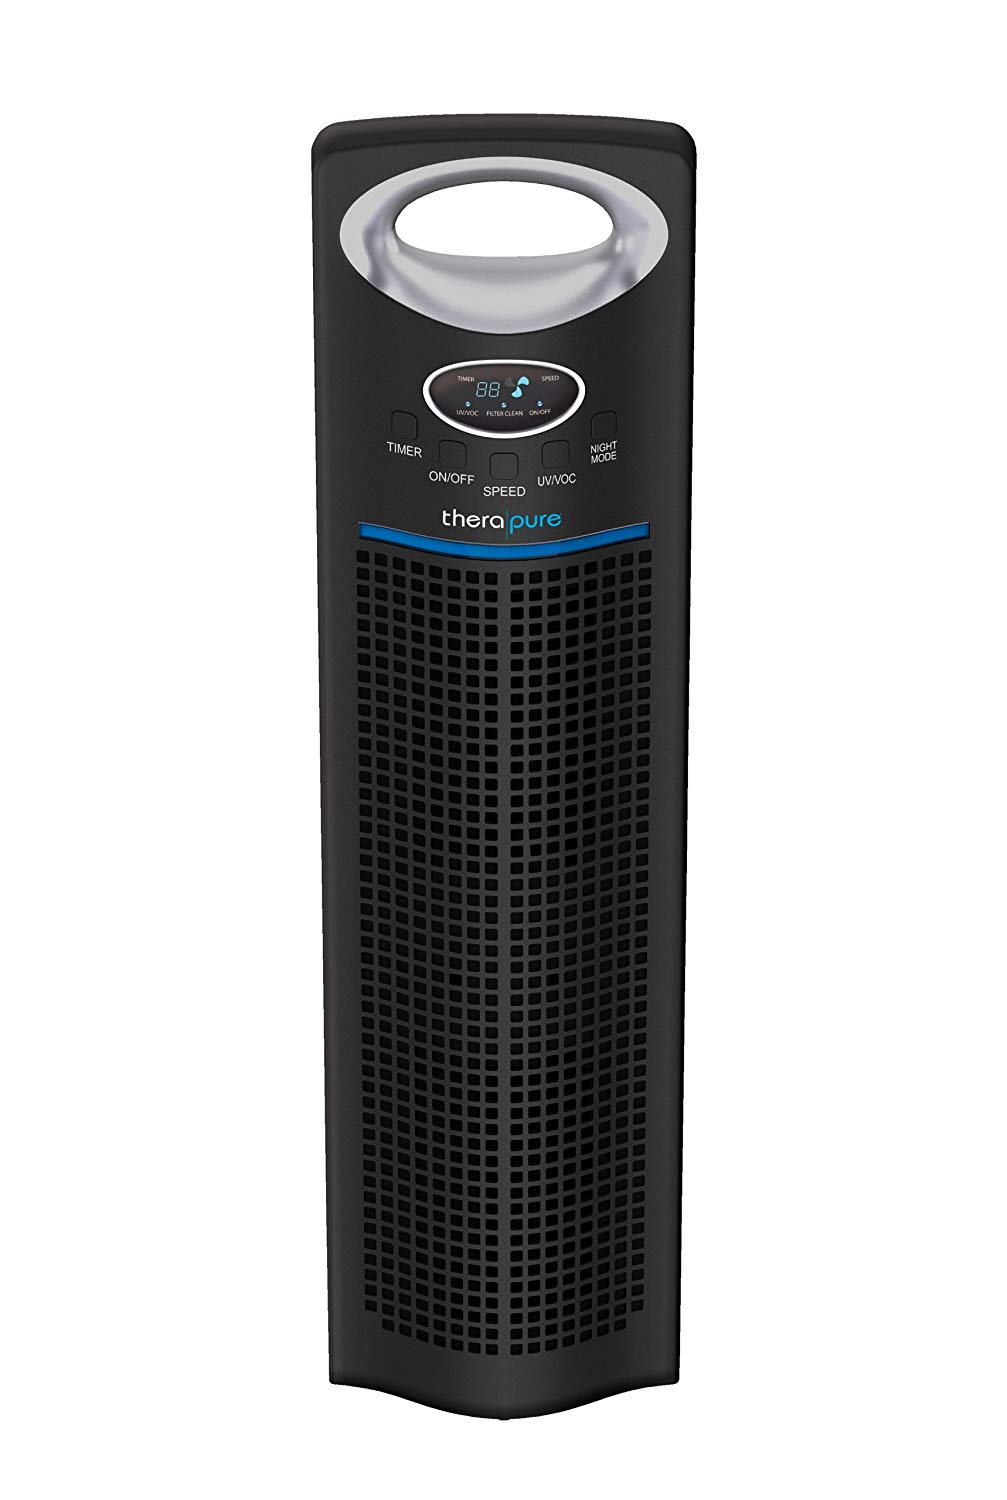 Therapure TPP440 Review - Front Facing picture of the TPP440 air purifier